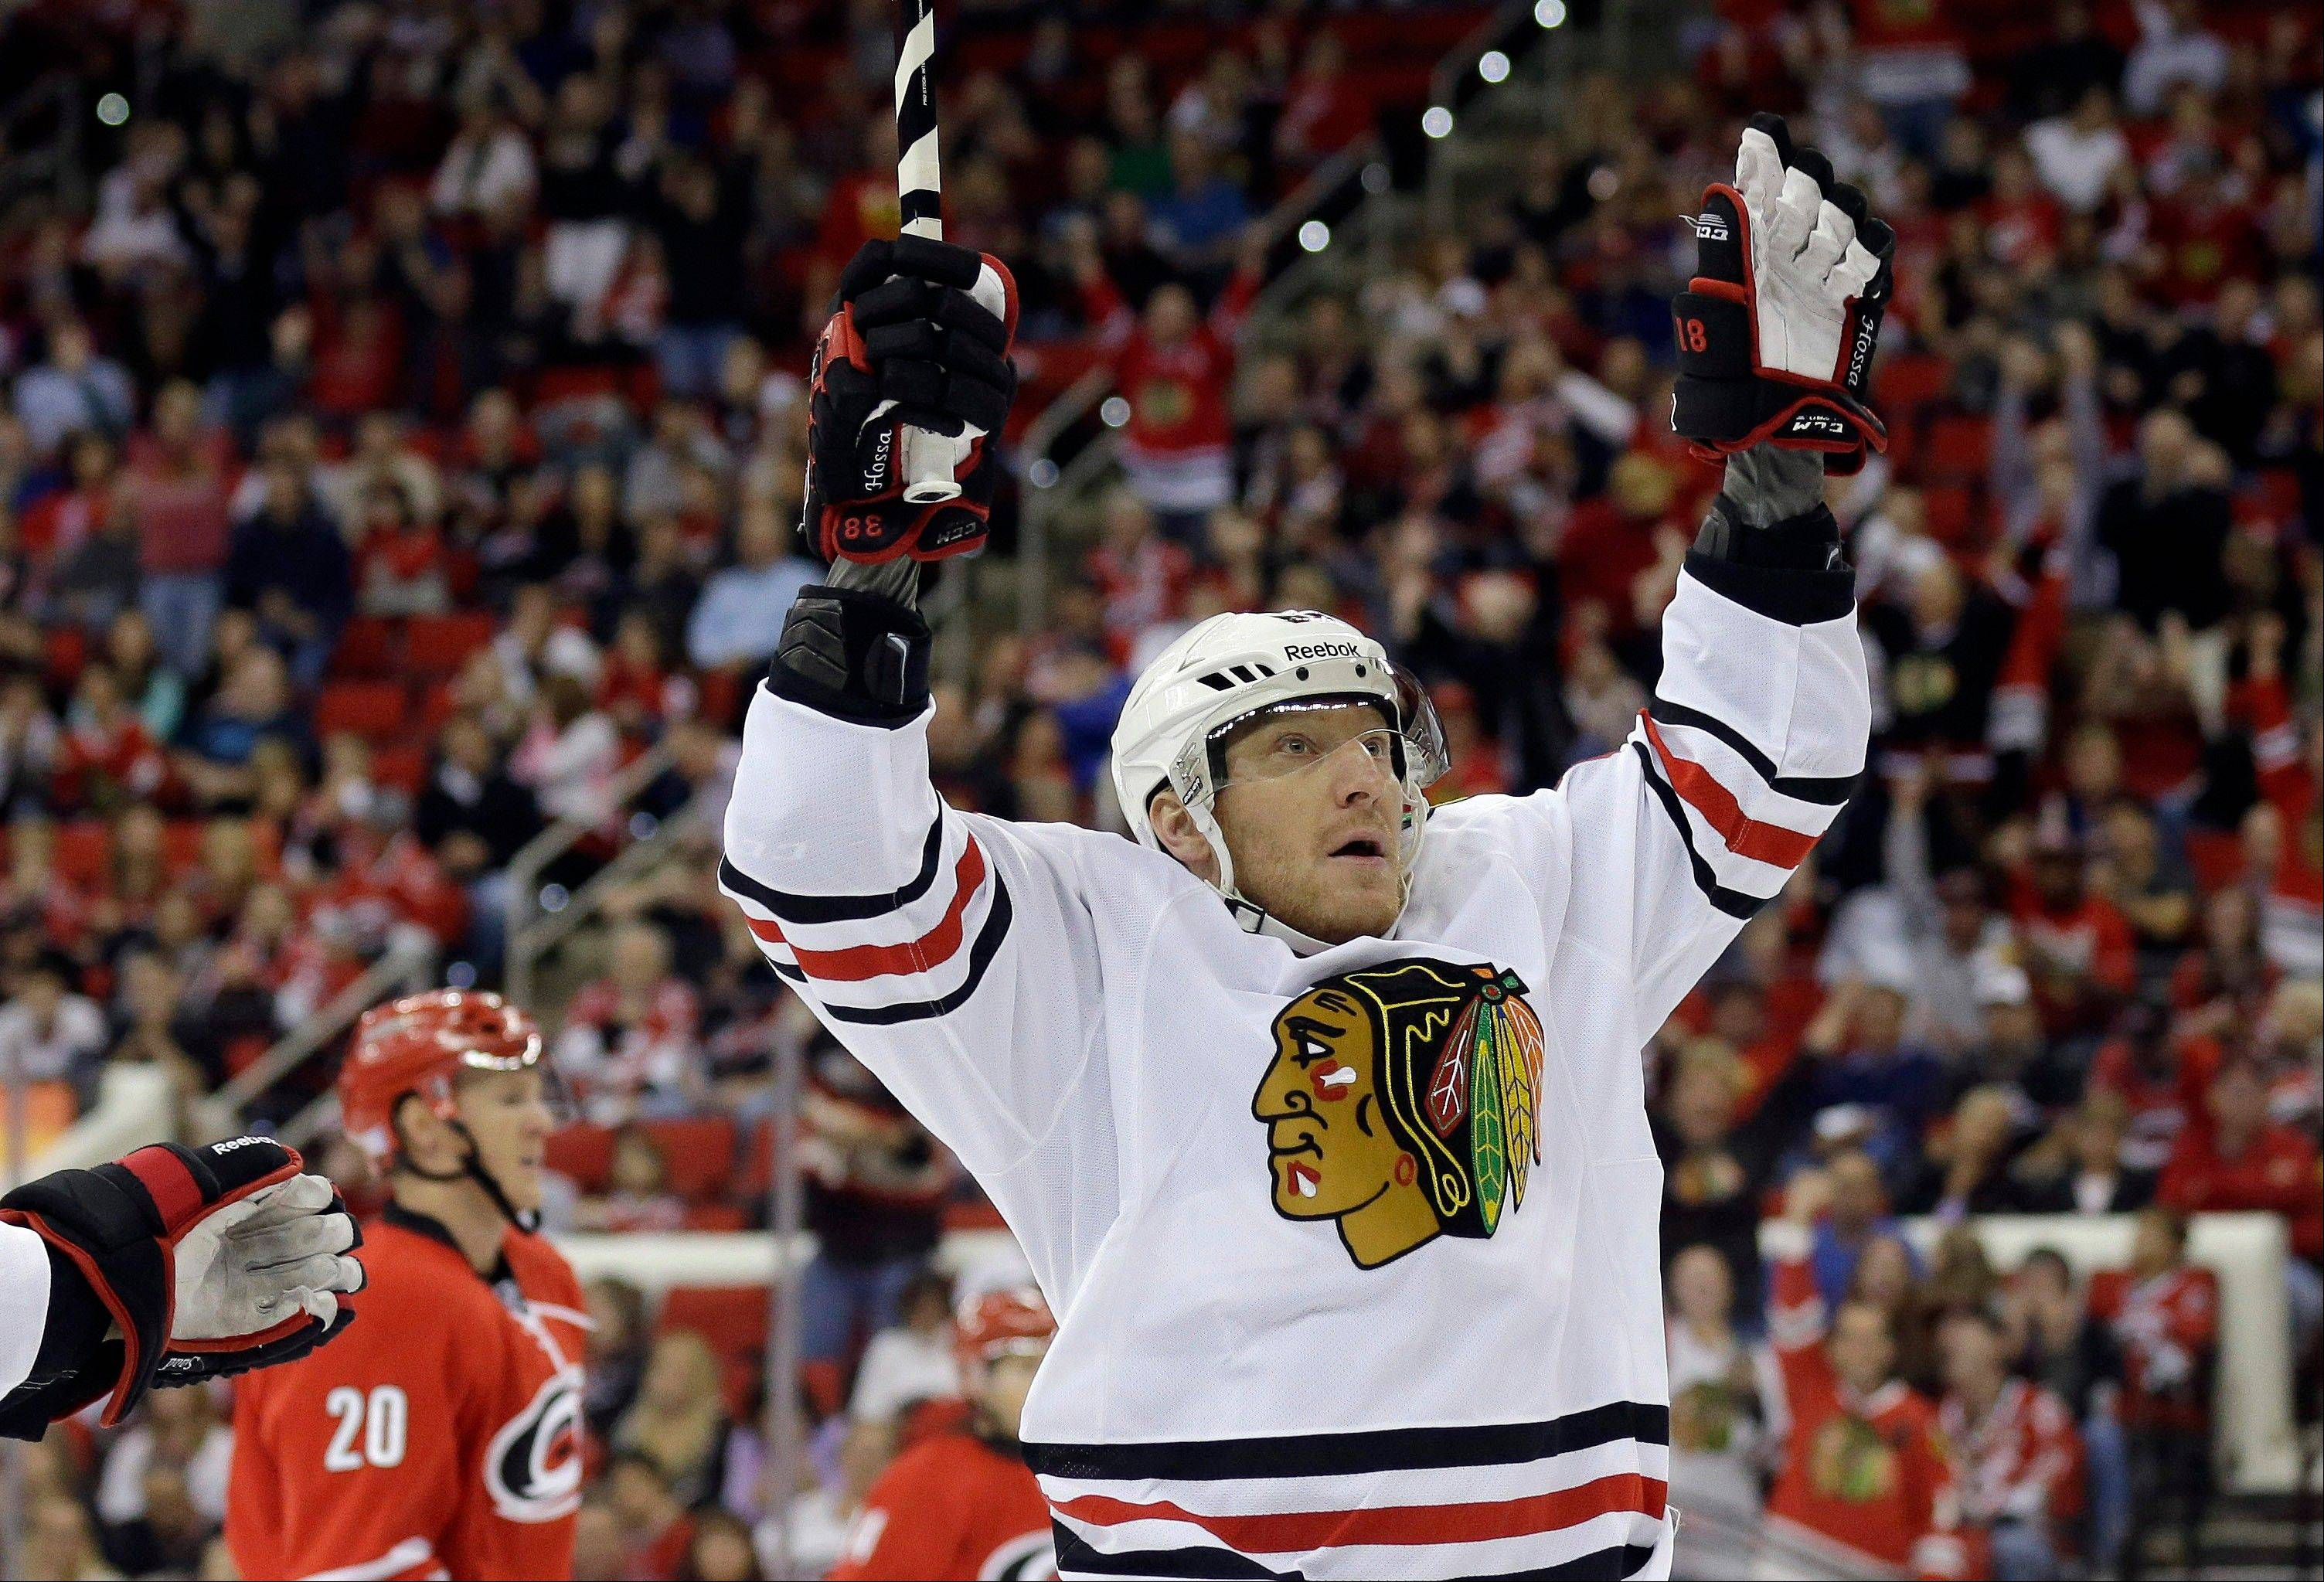 Blackhawks' Hossa doing what it takes to stay sharp